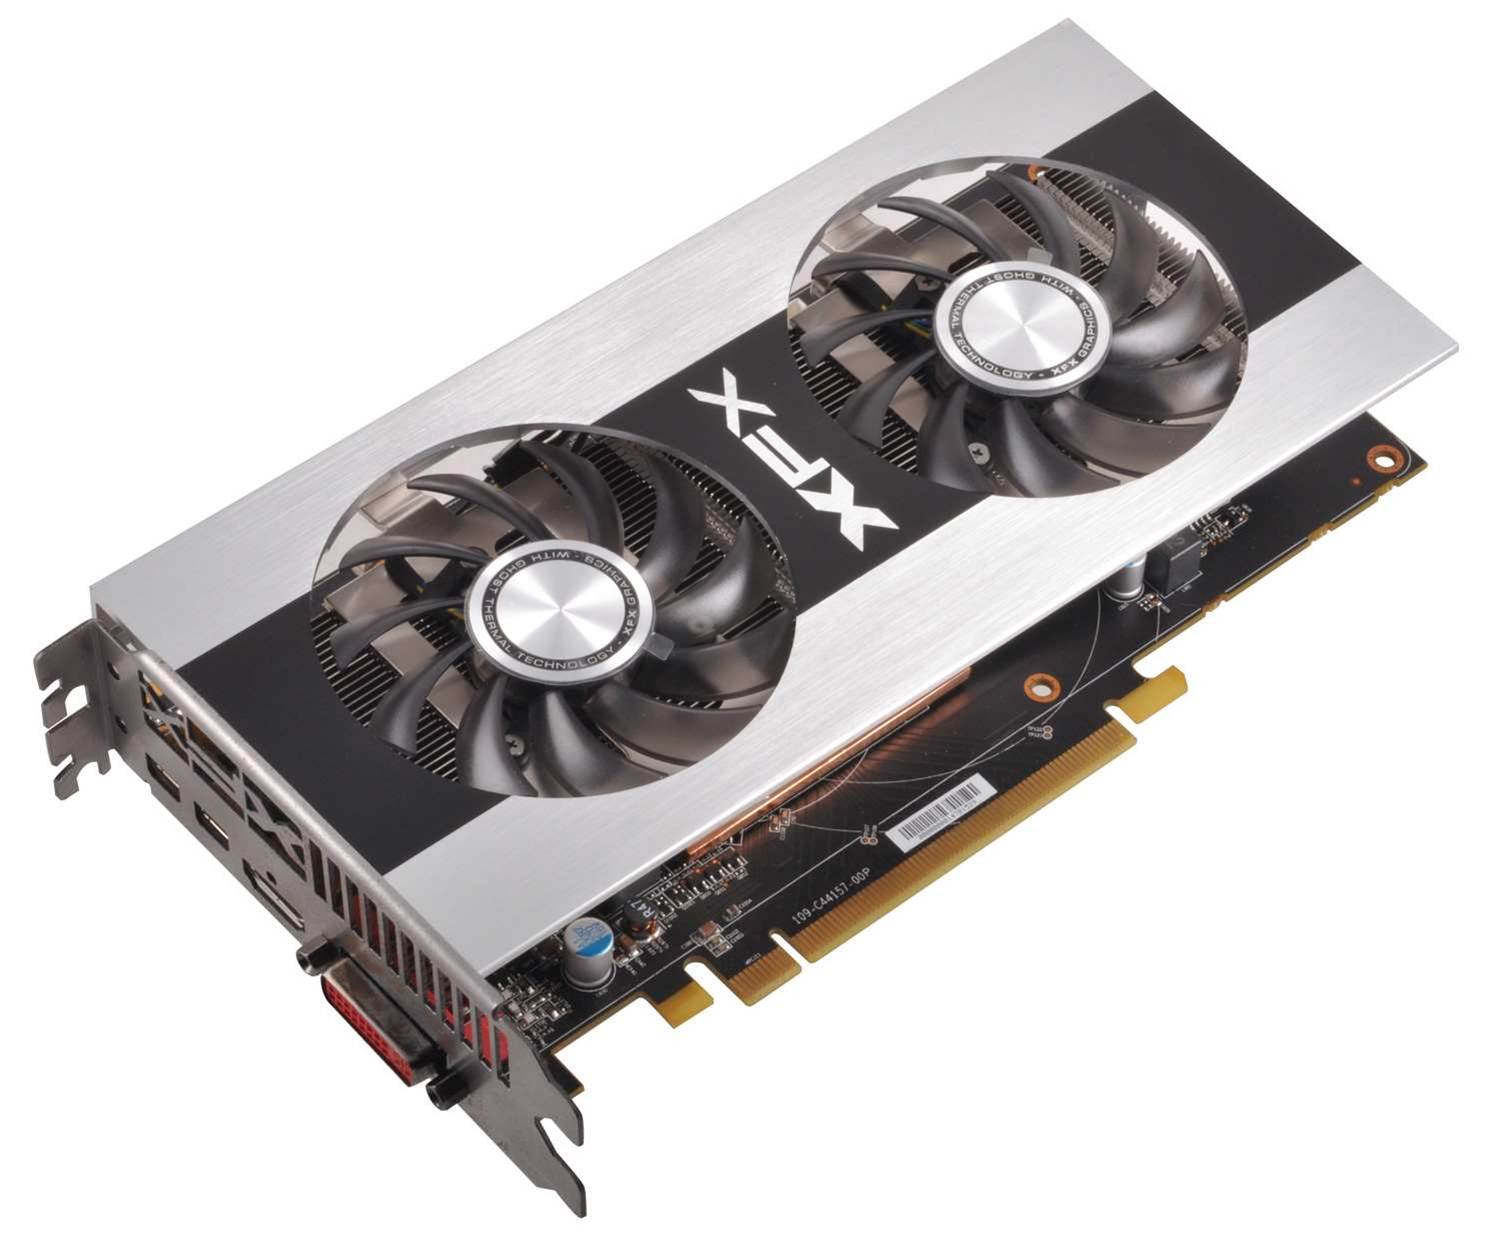 XFX HD 7770 Black Edition - just too pricey